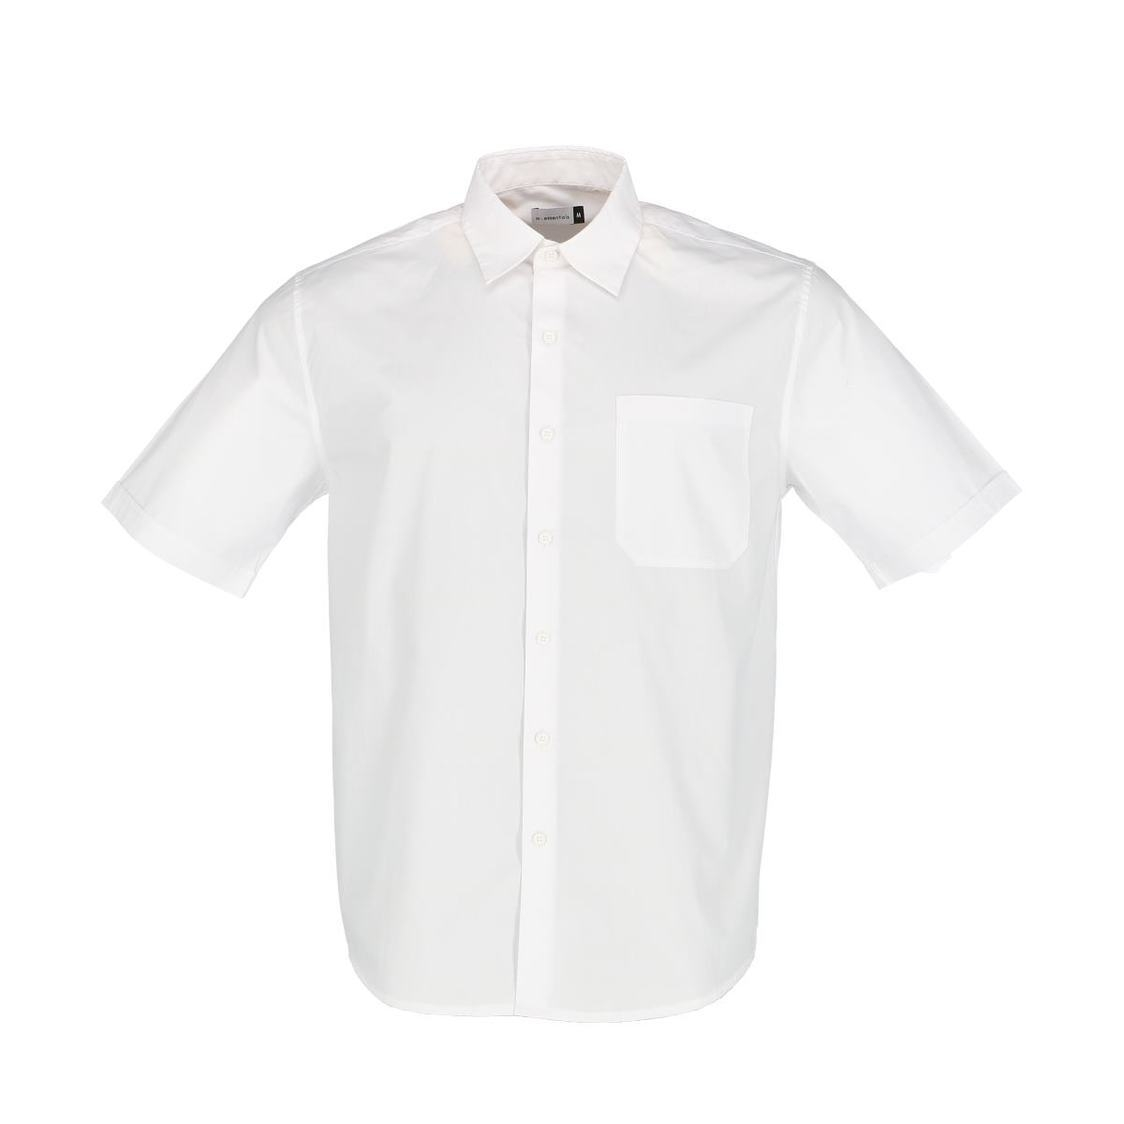 Mens Short Sleeve Shirt In Solid White